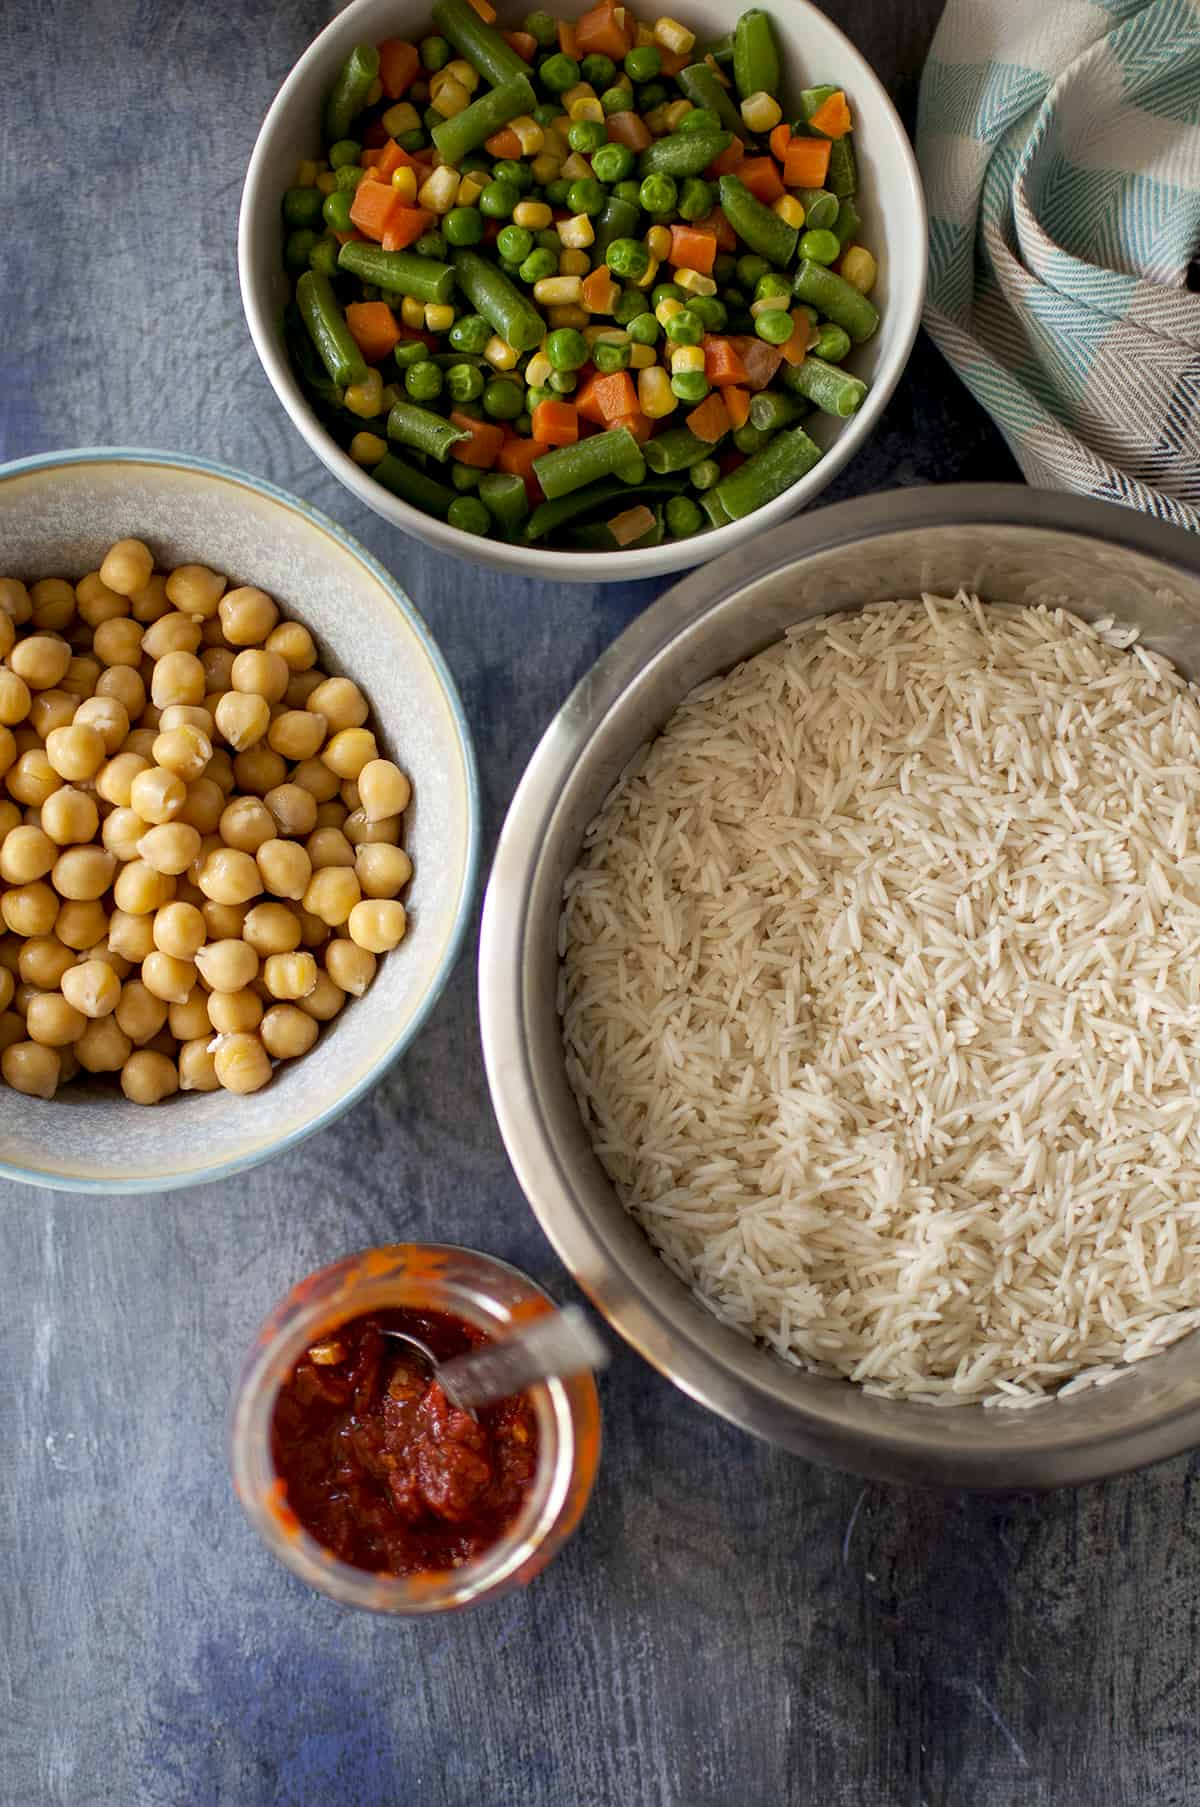 Required Ingredients for achari pulao - mixed vegetables, rice, chickpeas and chutney